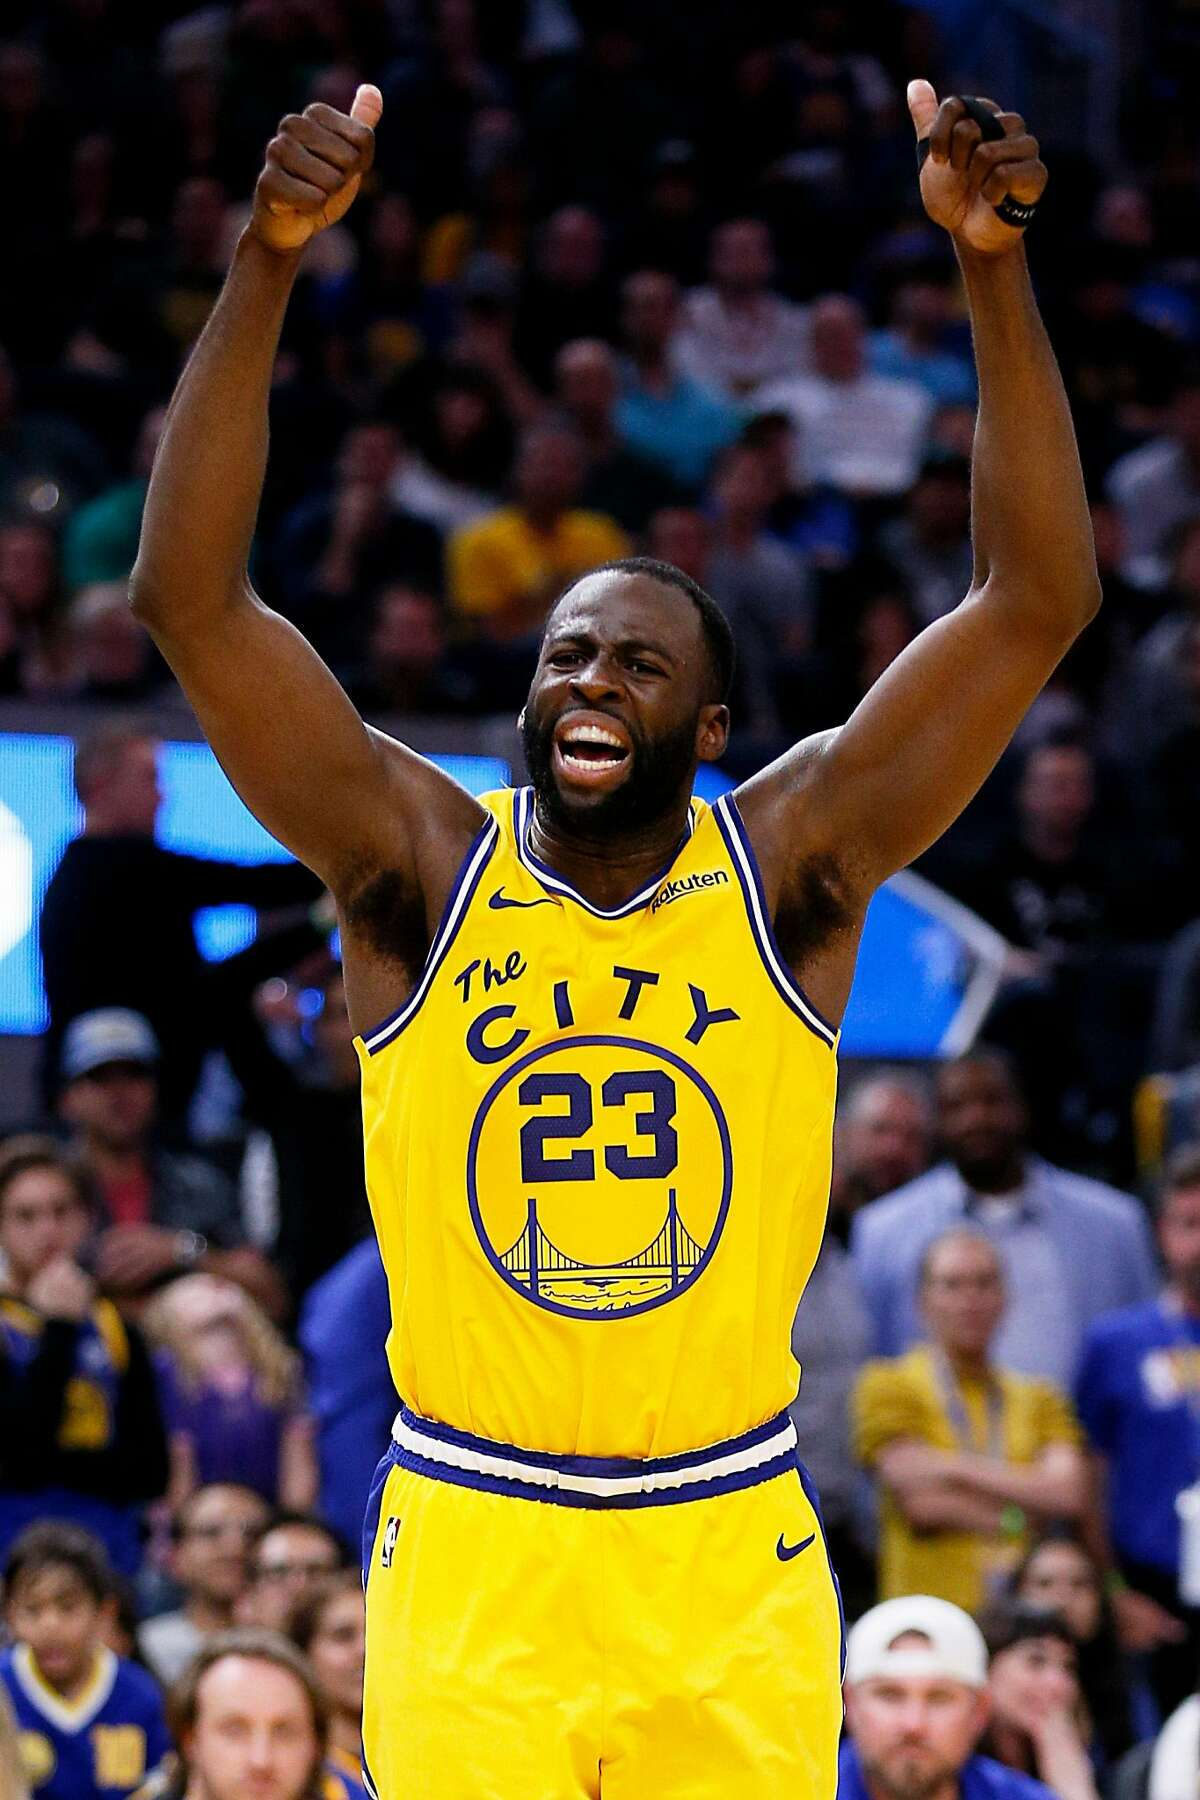 Golden State Warriors forward Draymond Green (23) calls to the officials after he fouled Boston Celtics forward Daniel Theis (27) in the second half of an NBA game against the Boston Celtics at Chase Center on Friday, Nov. 15, 2019, in San Francisco, Calif. The play was reviewed and overturned. Warriors have possession.